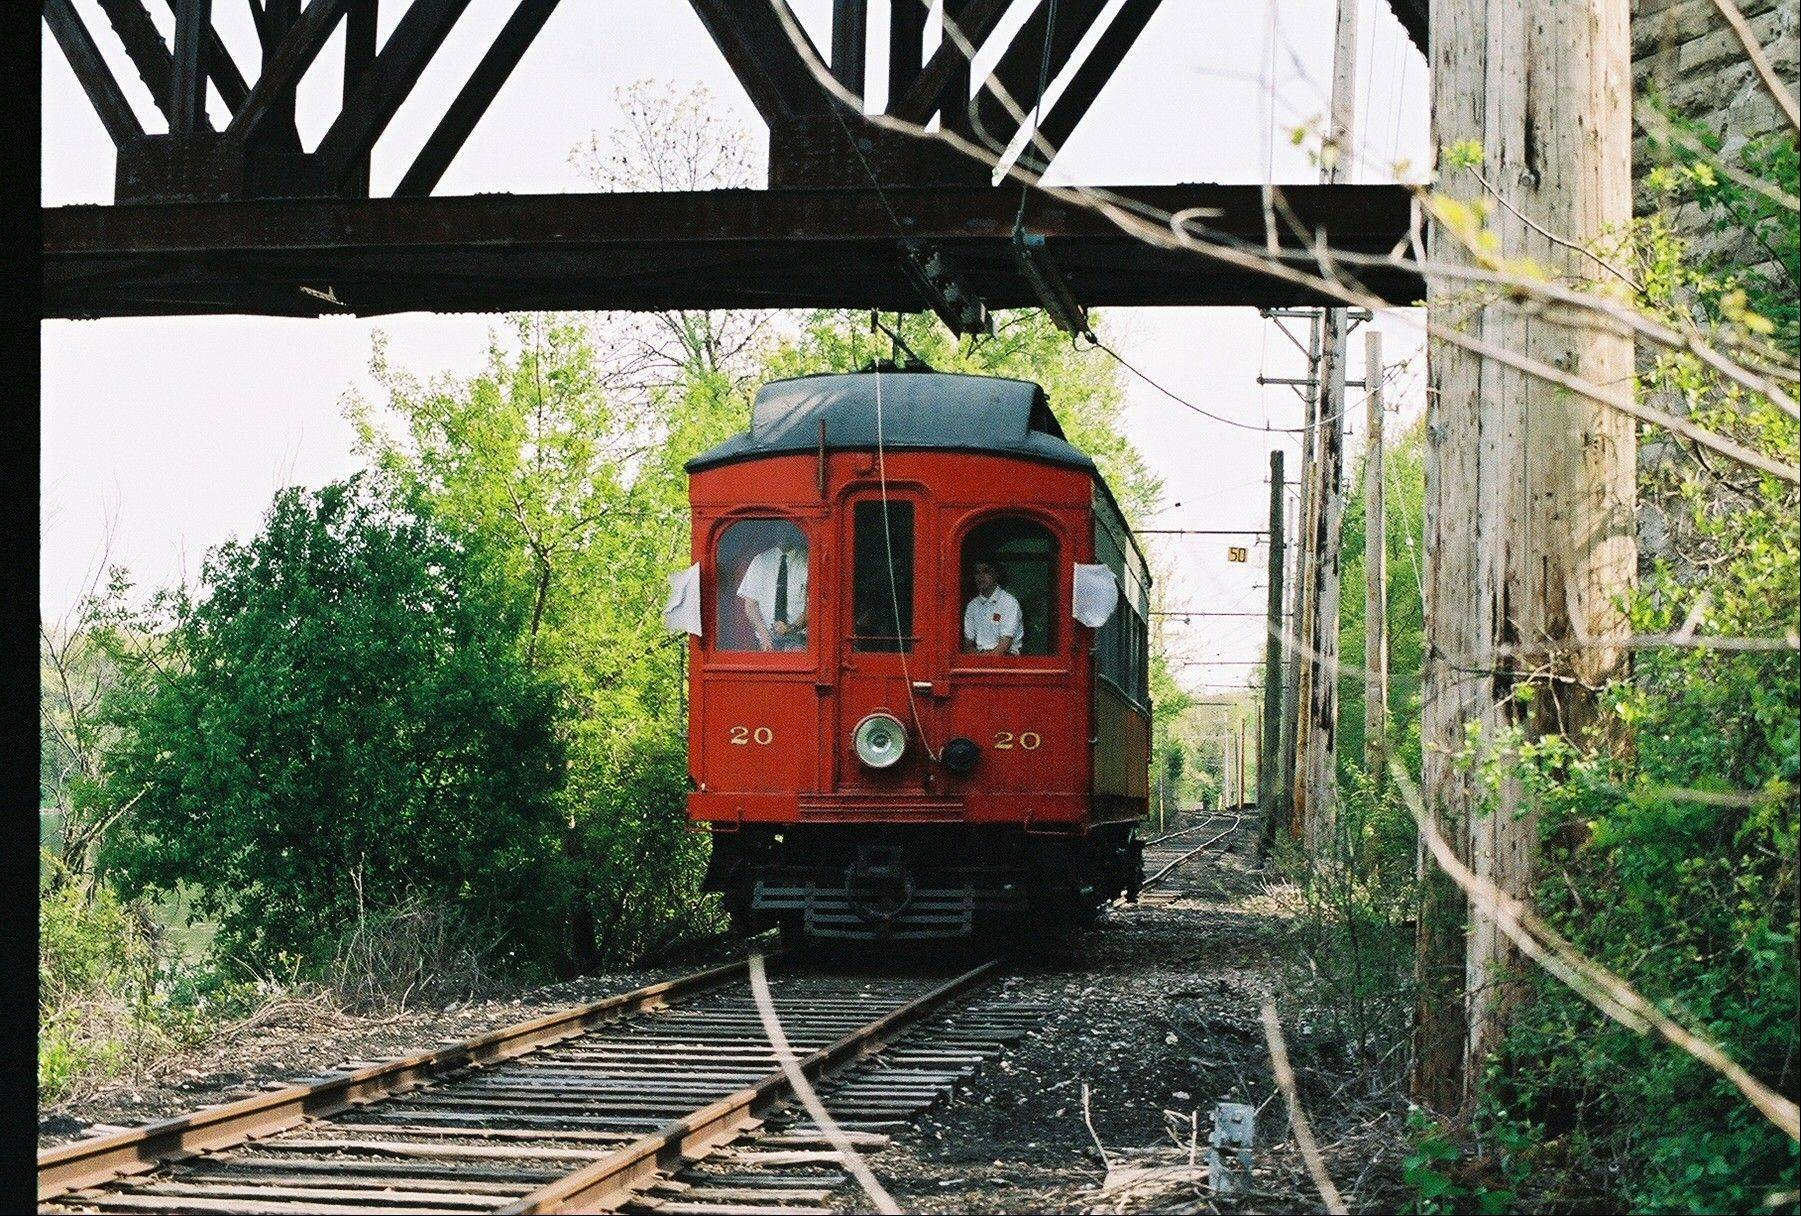 Mothers and grandmothers can hop on a trolley for a free Mother's Day trolley ride at the Fox River Trolley Museum in South Elgin.